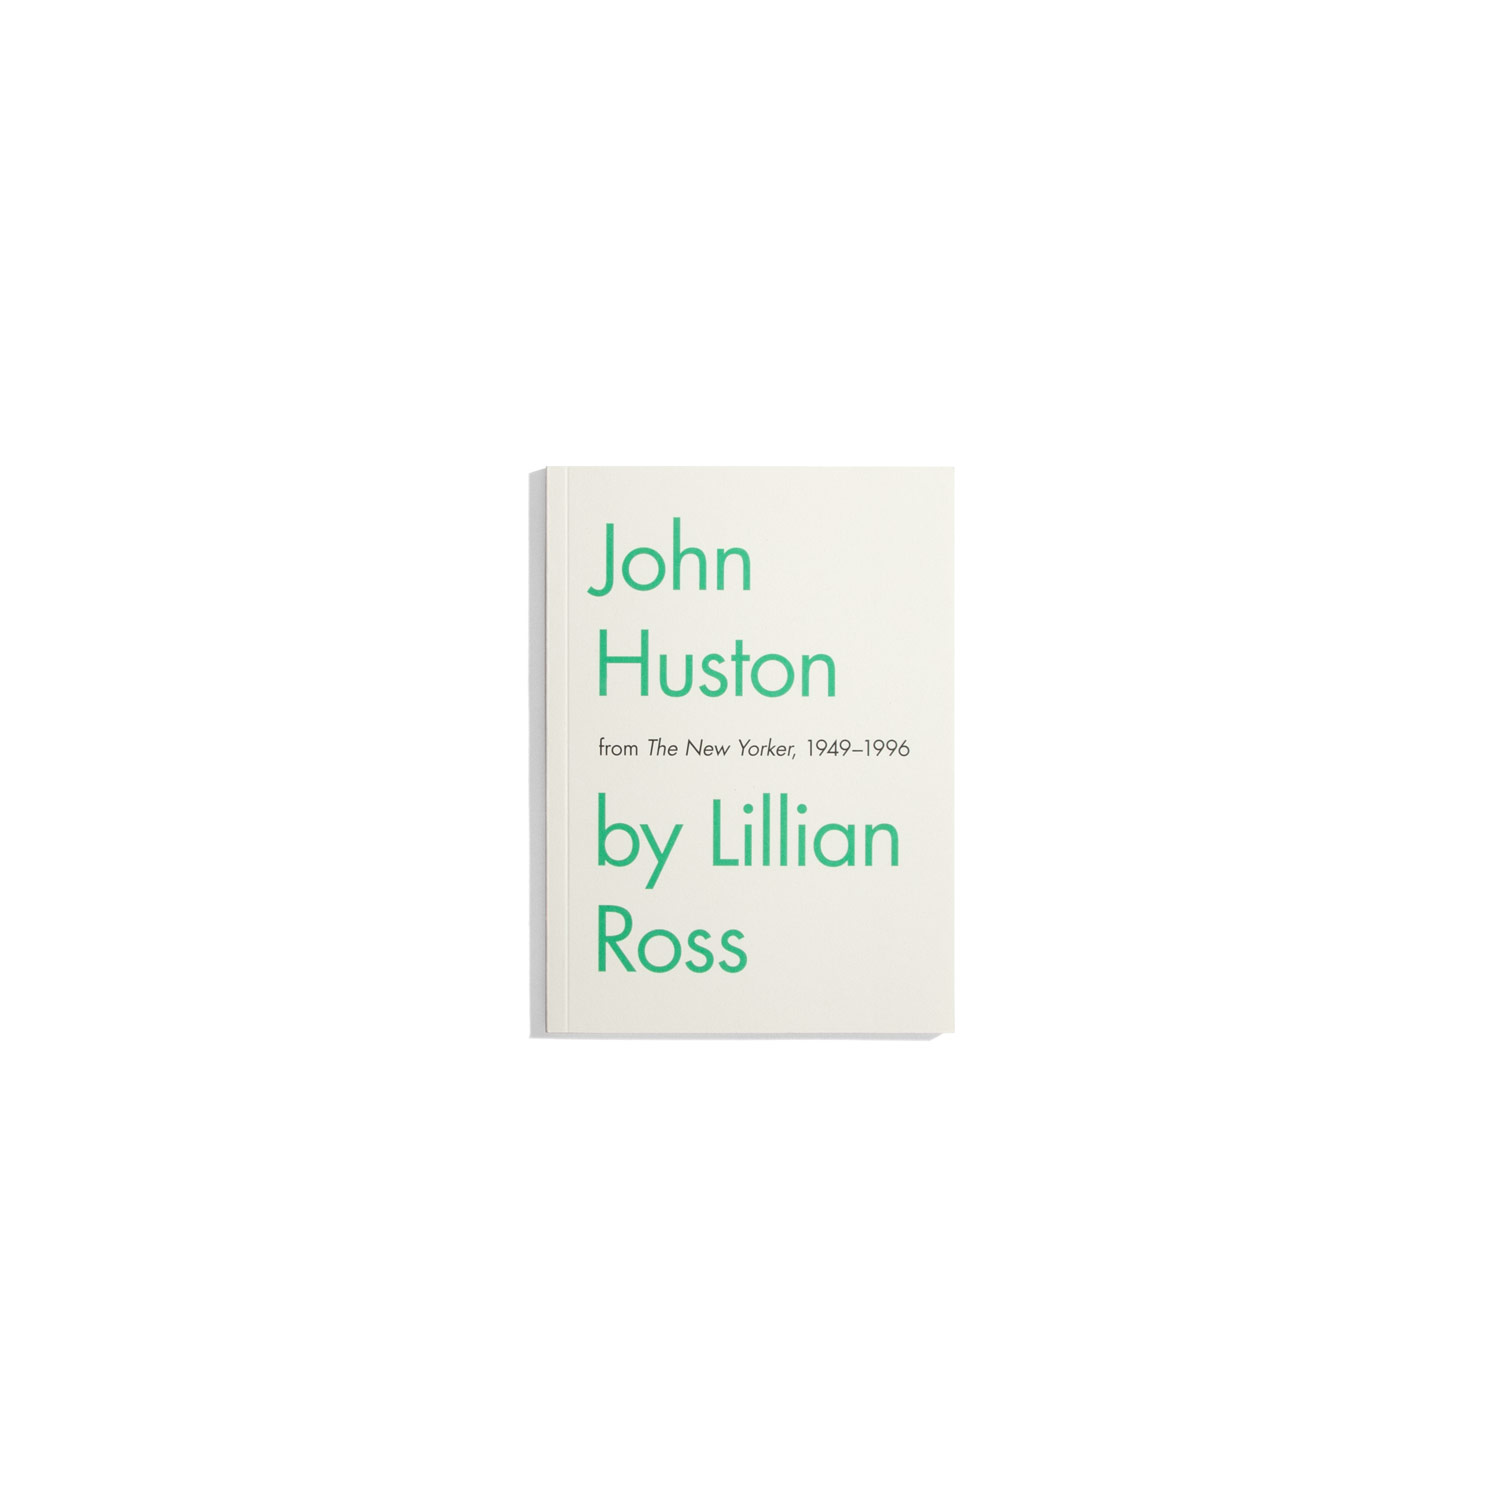 John Huston by Lillian Ross